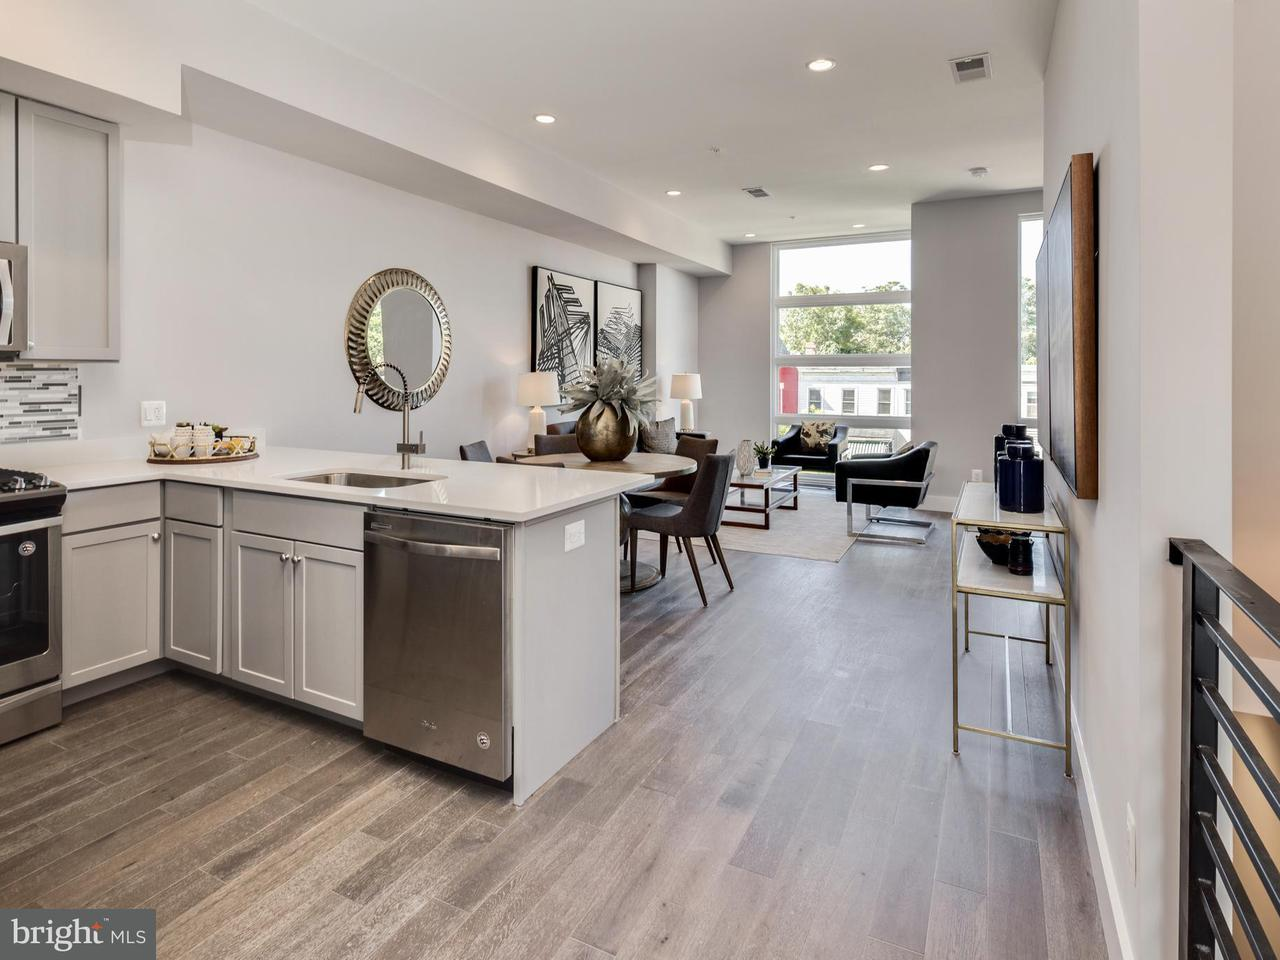 Additional photo for property listing at 3227 Sherman Ave Nw #Two 3227 Sherman Ave Nw #Two Washington, Distrito De Columbia 20010 Estados Unidos